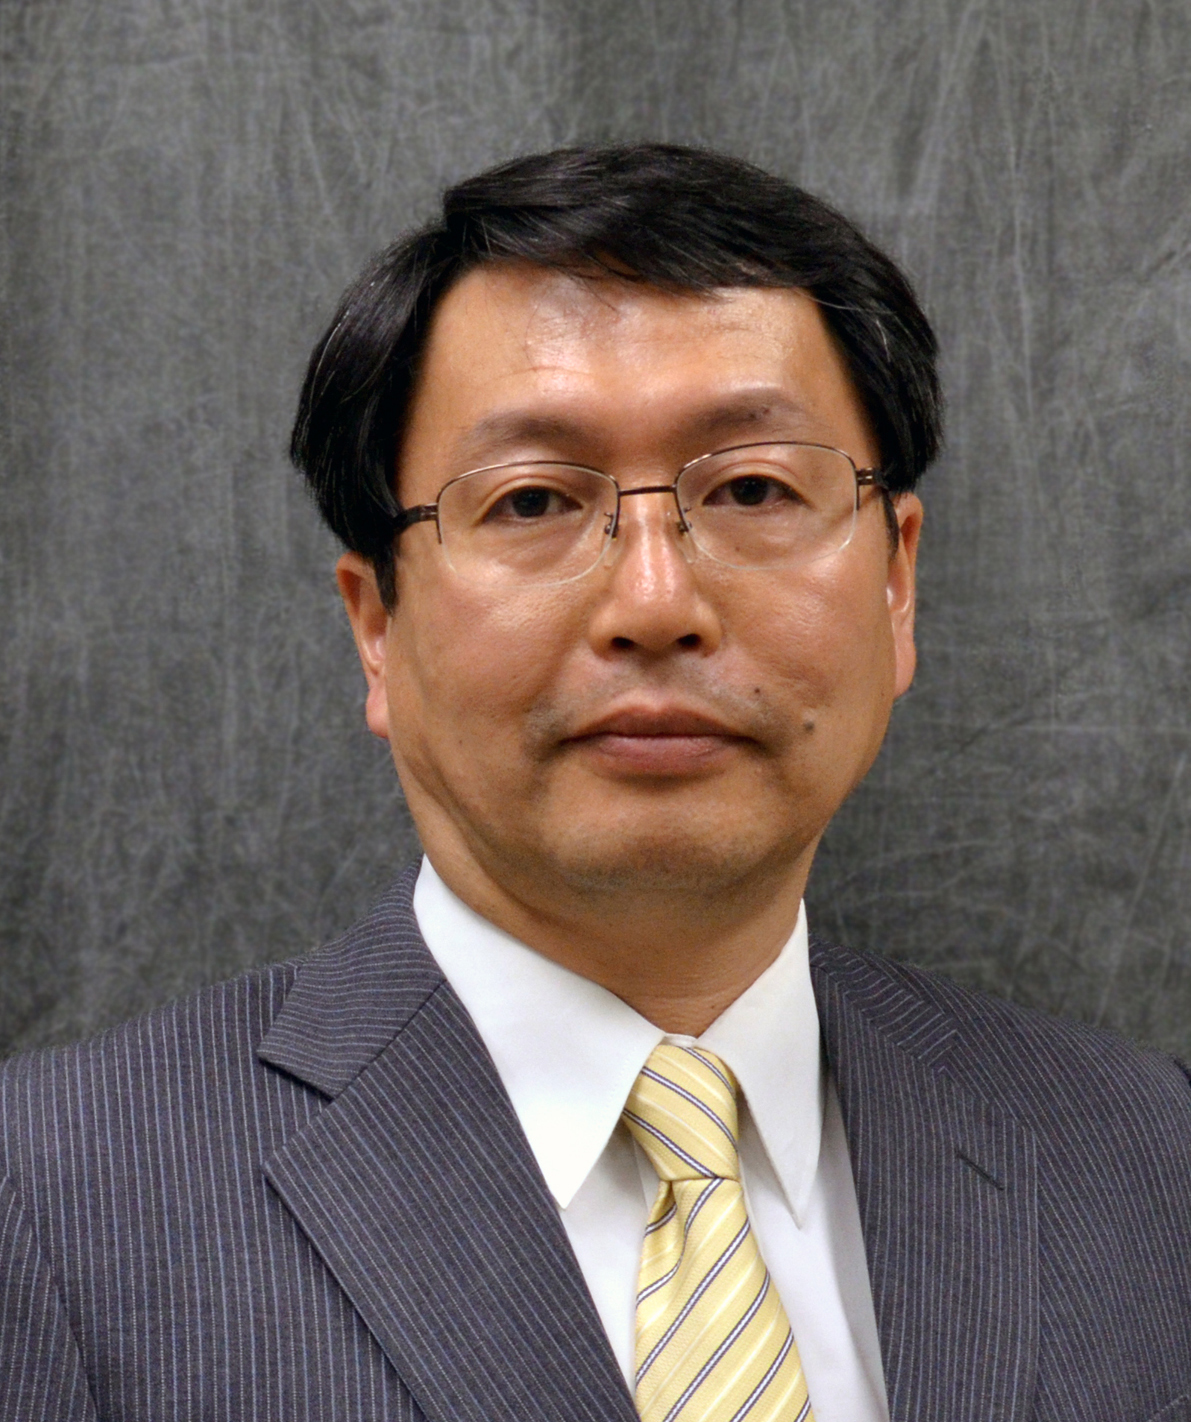 Hiroyuki Nagatsu will serve as a board member and officer of the Motoman Robotics Division, with direct responsibilities of managing Asian American customer relationships and advising the president of the division.(Click on photo to enlarge it)